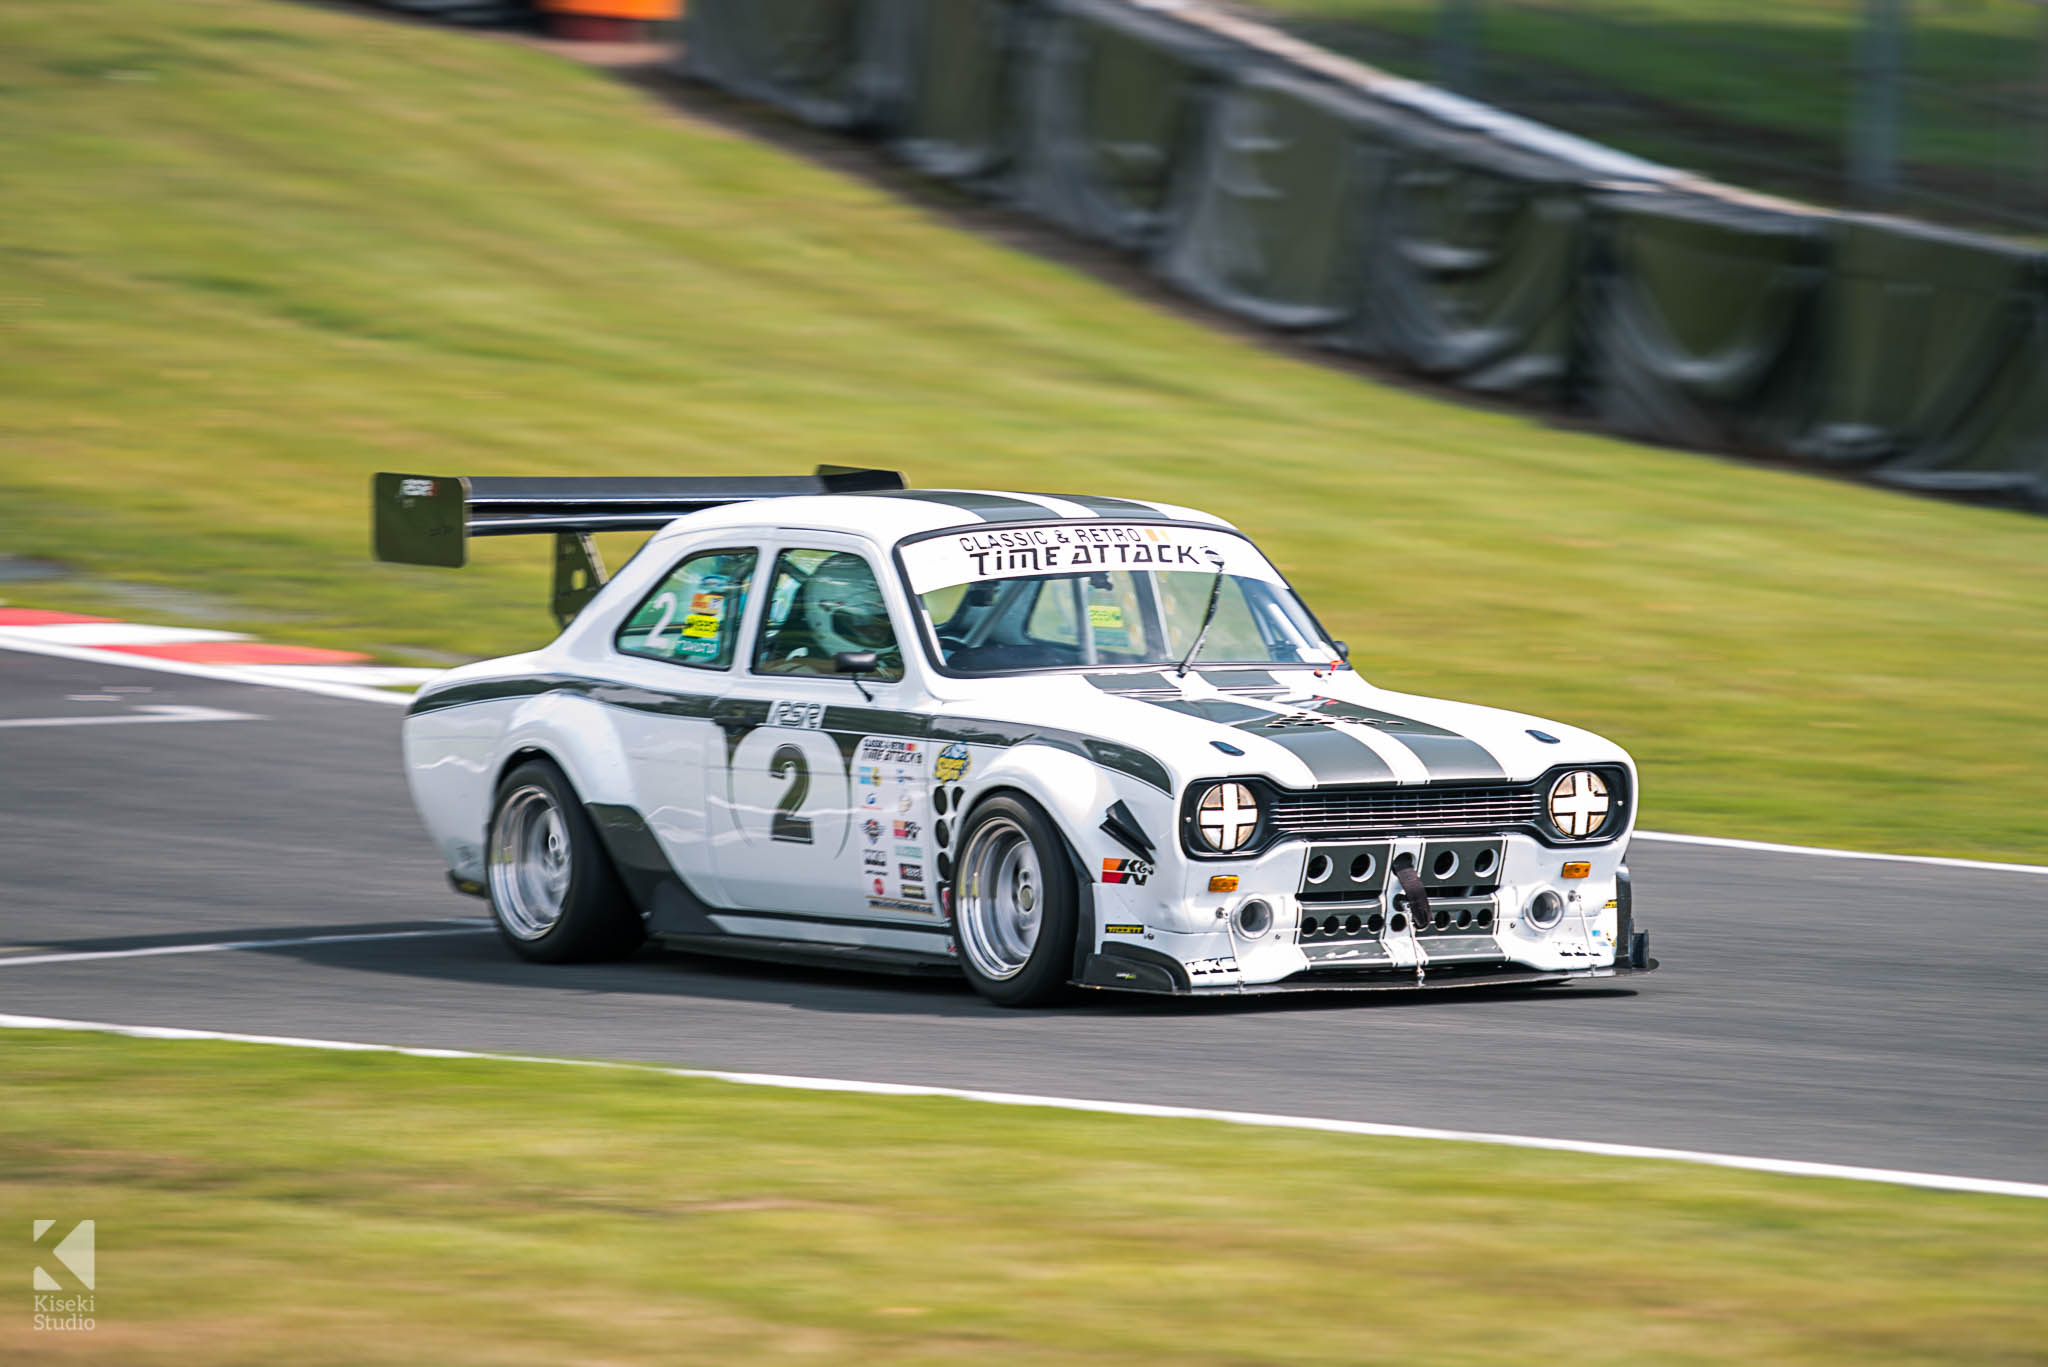 Ford Escort Mk1 Time Attack